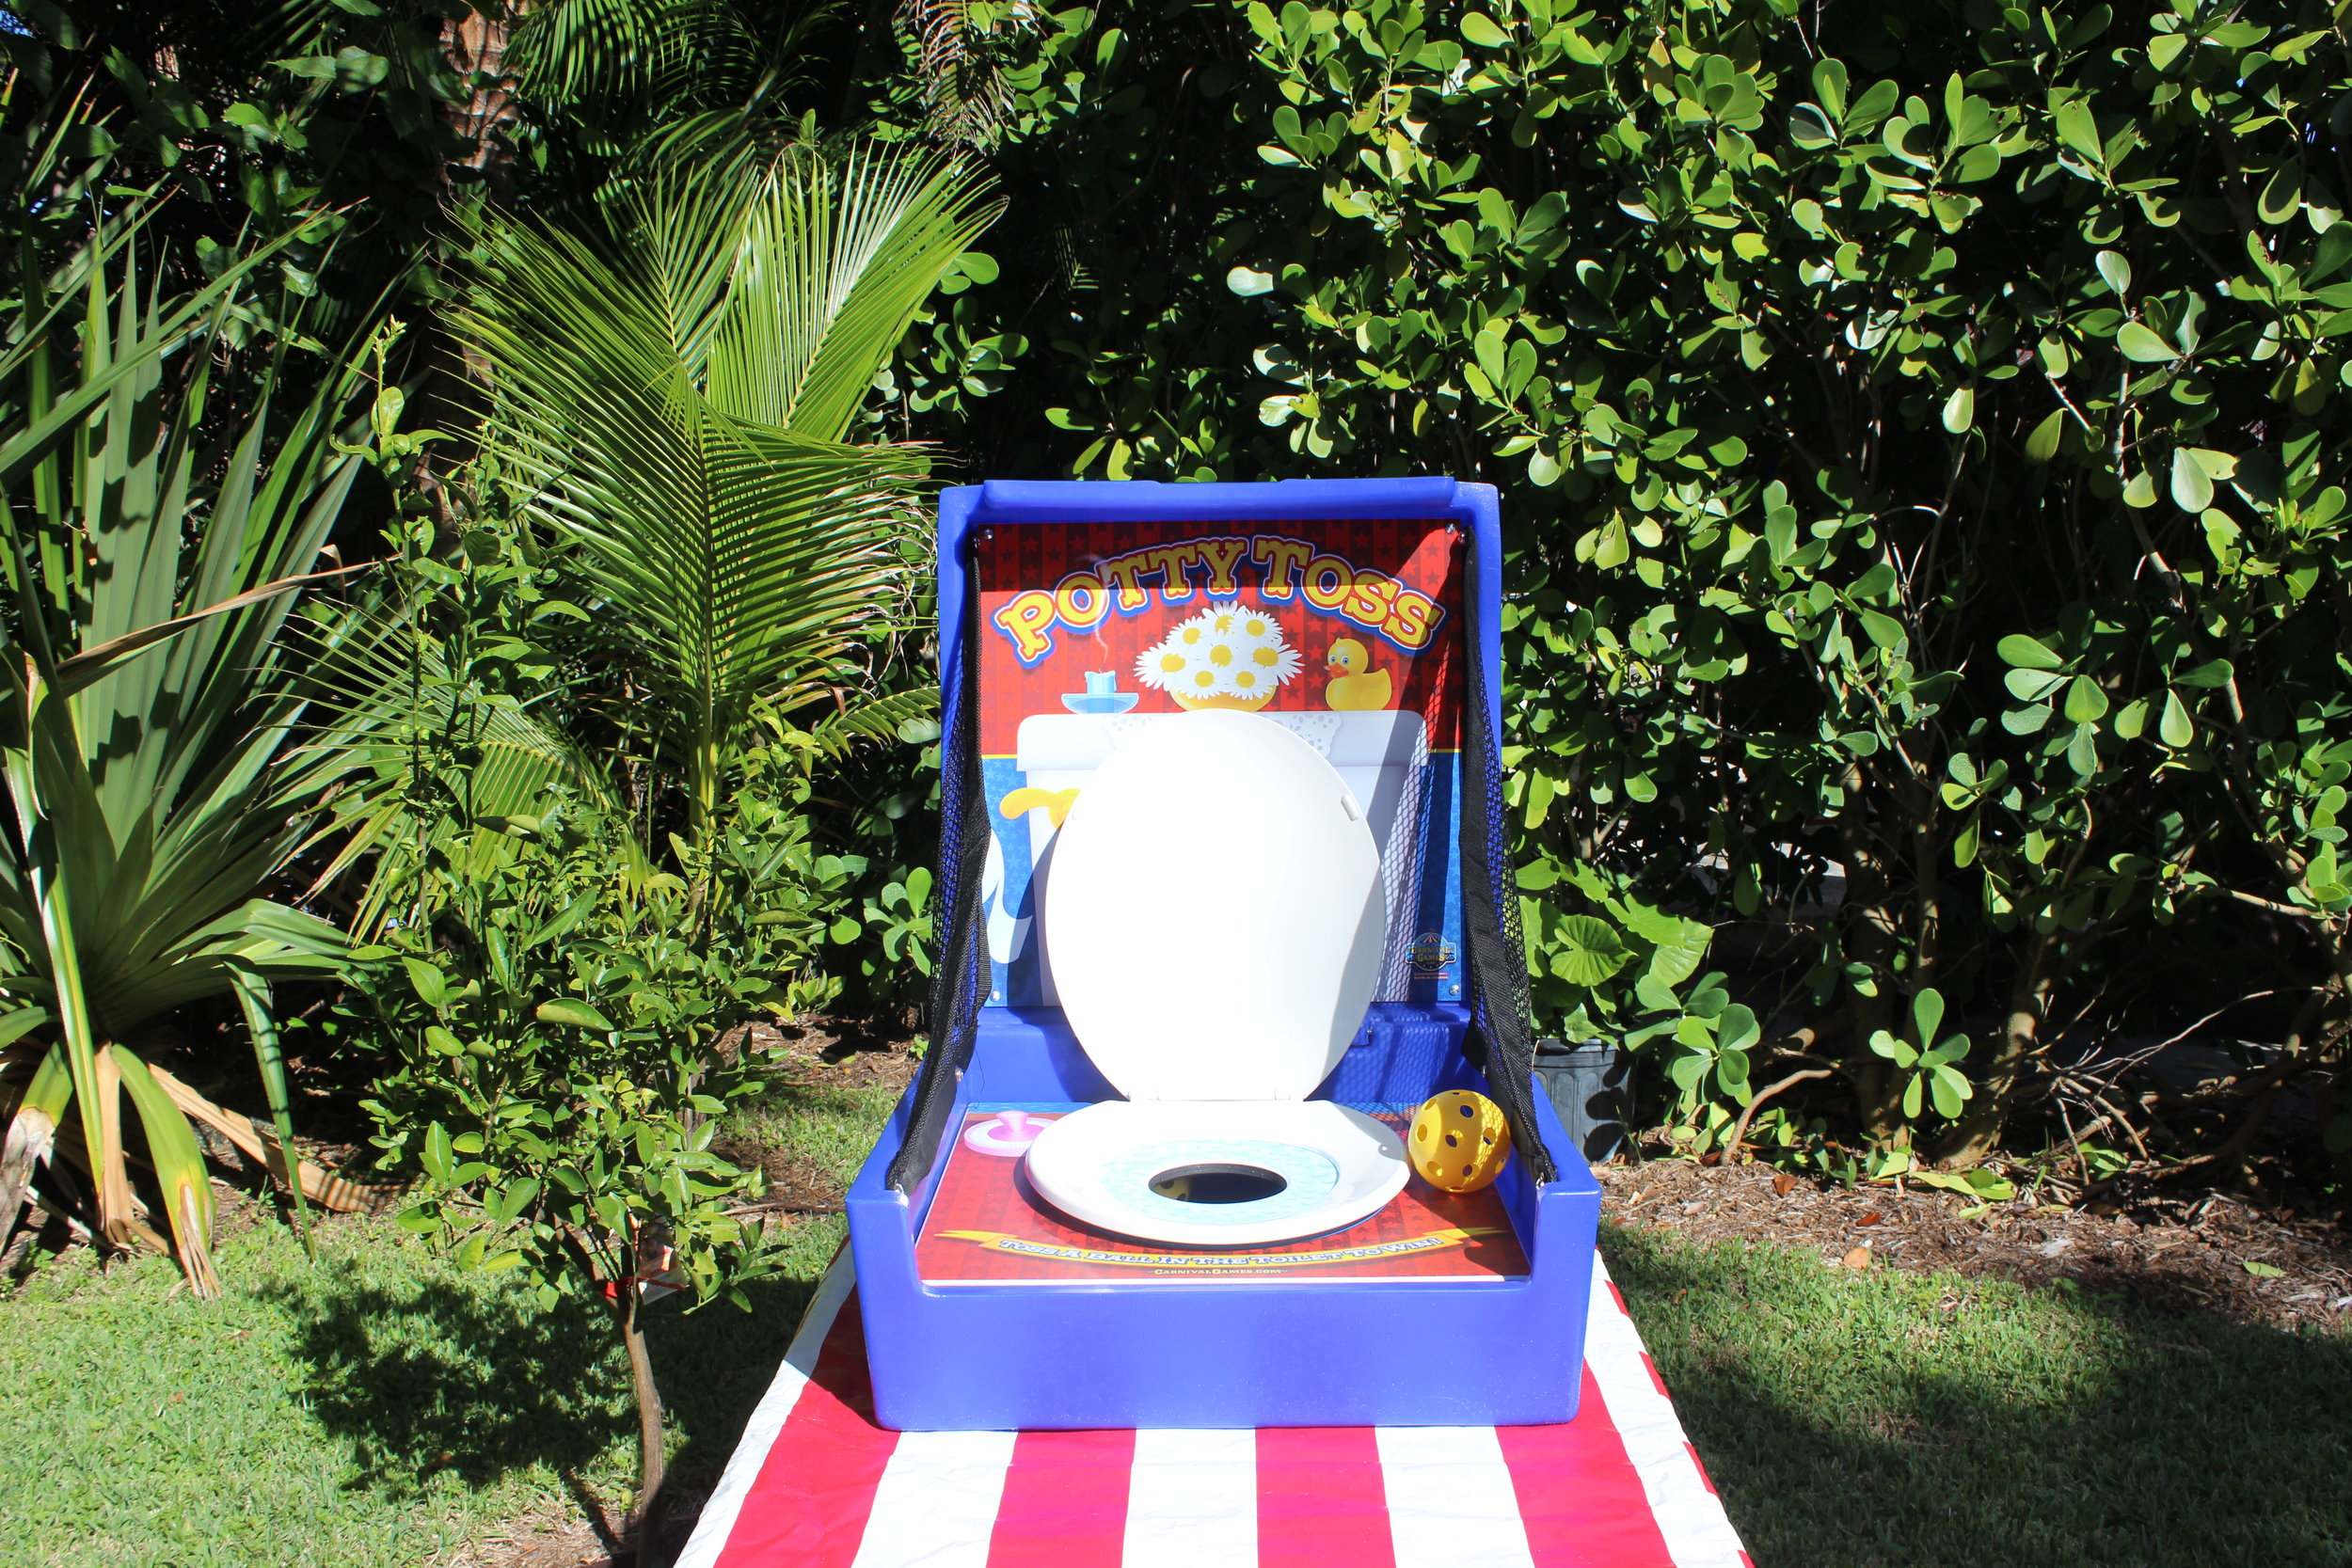 pottytoss-jupiterbouncehouse-waterslide-carnivalgames-circus-photobooth-mechanicalbull.jpg